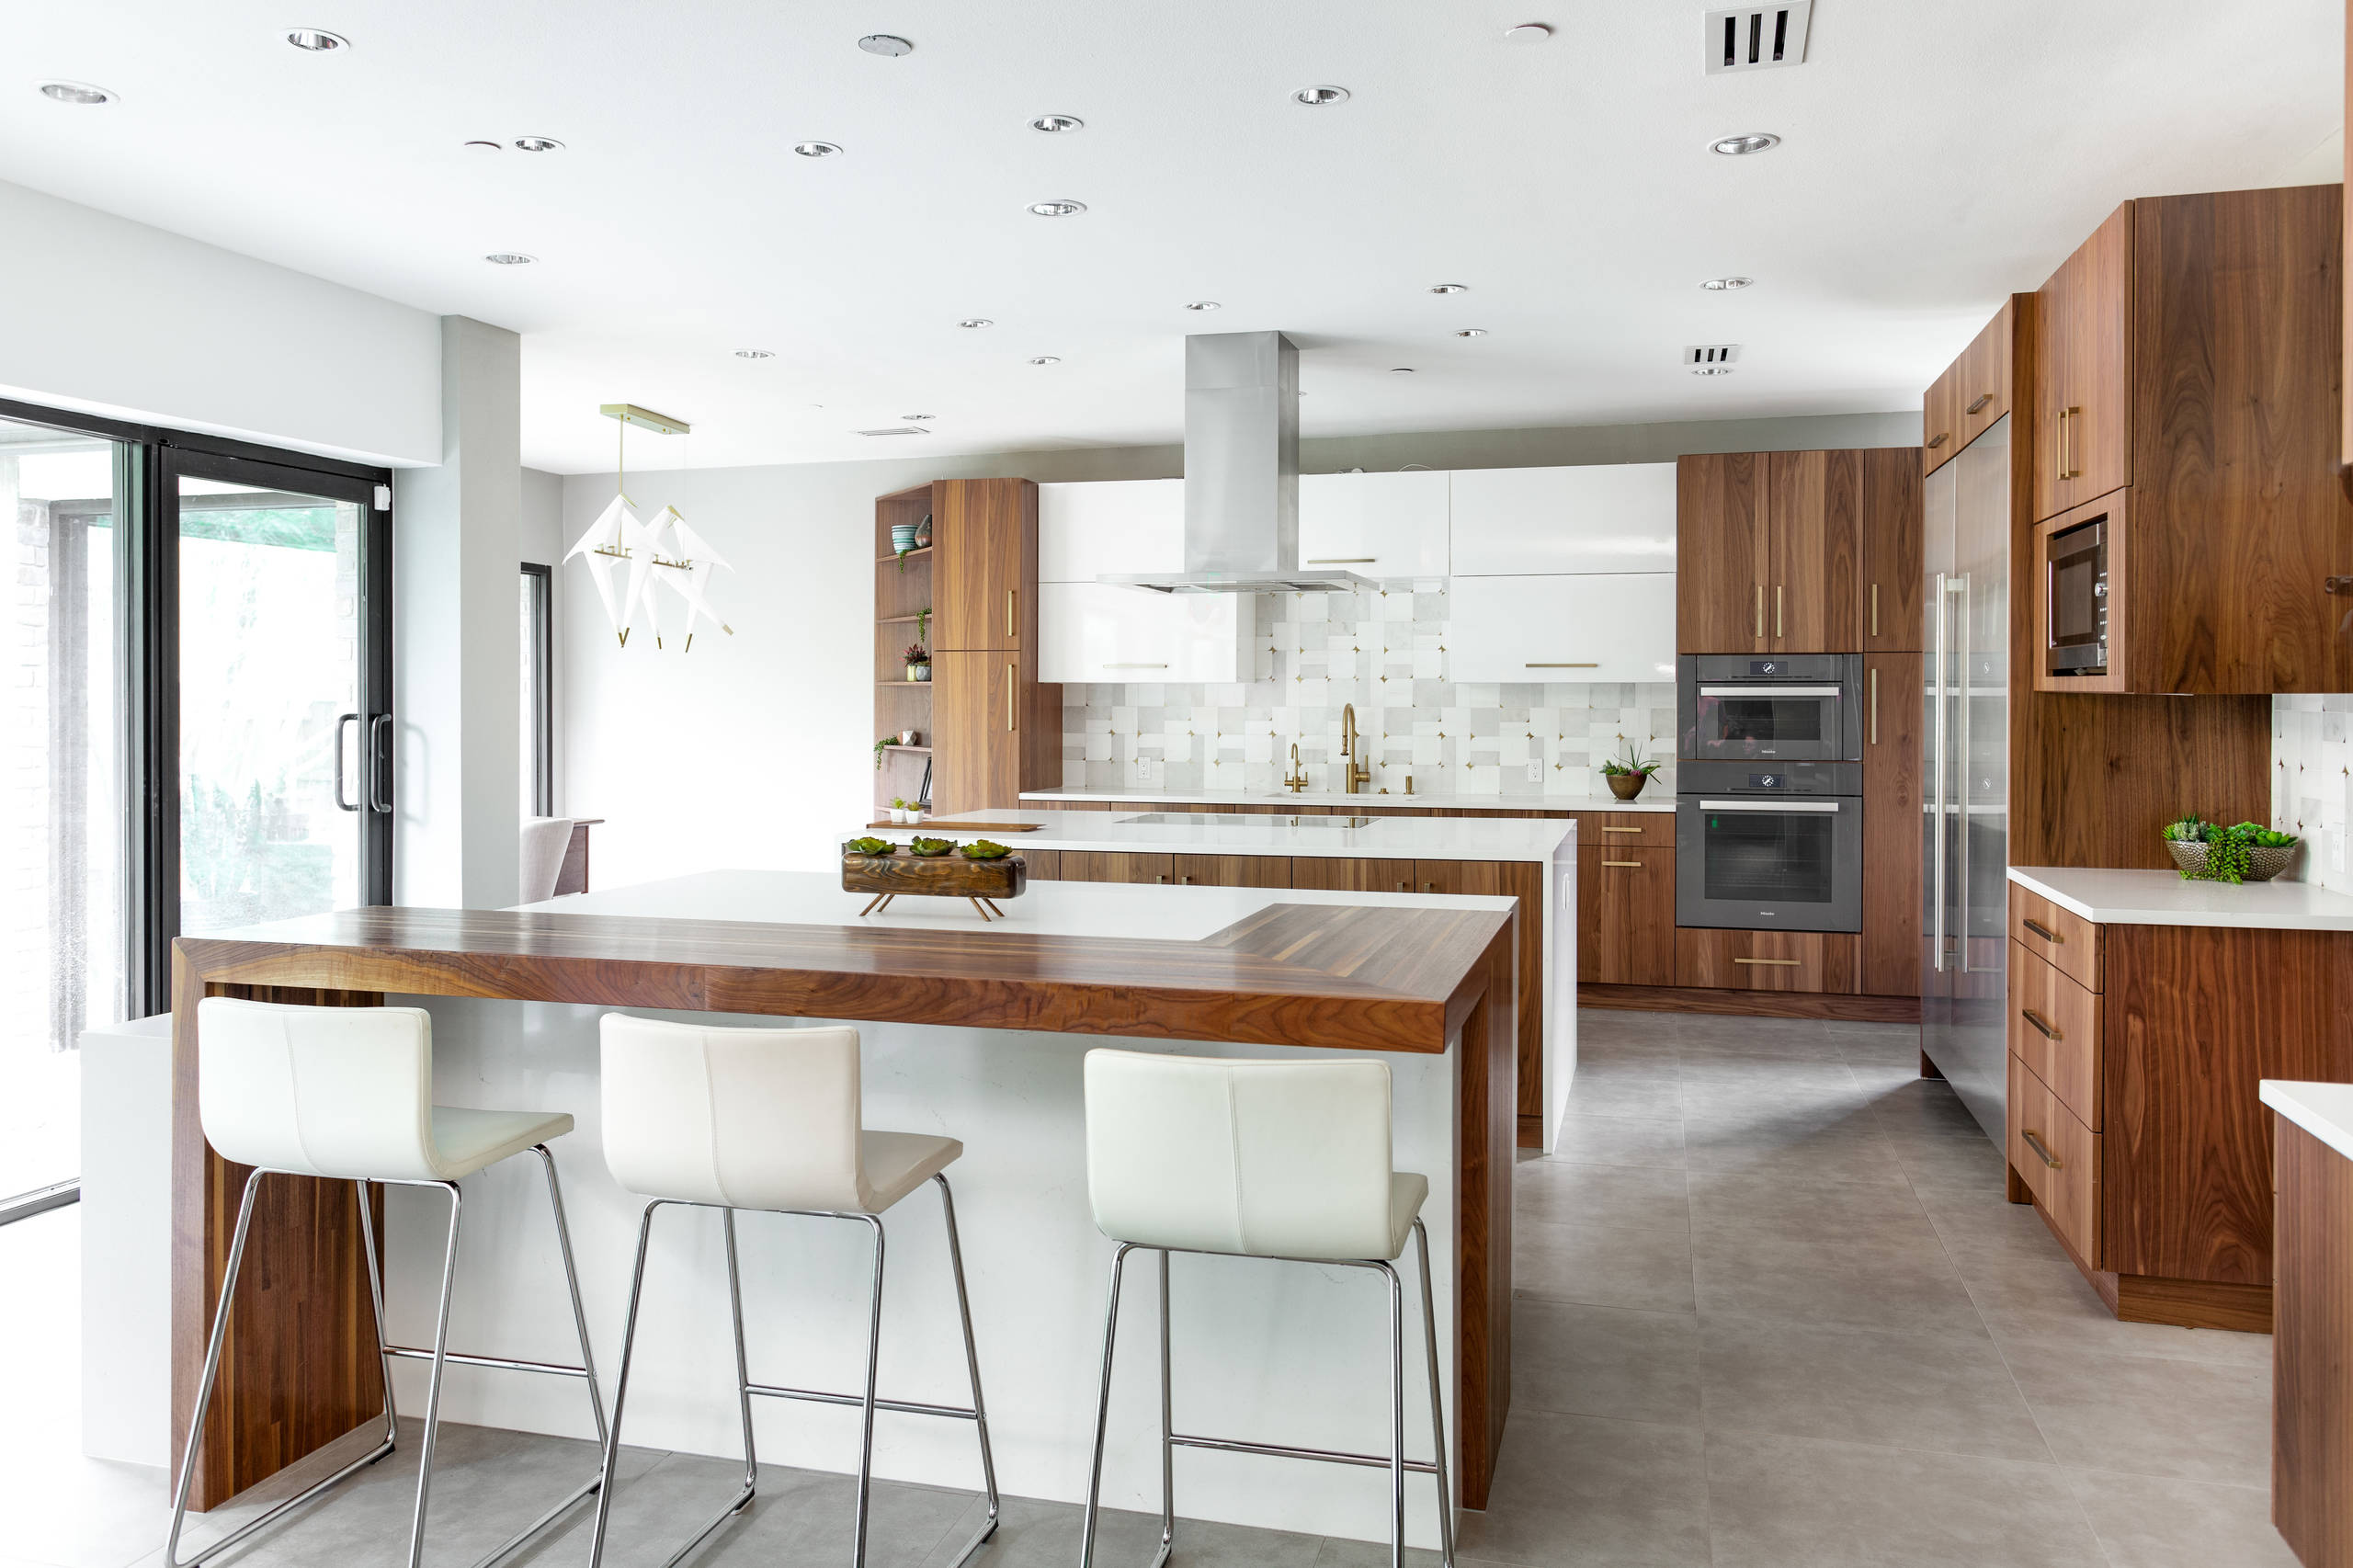 11 Beautiful Double Island Kitchen Pictures & Ideas  Houzz